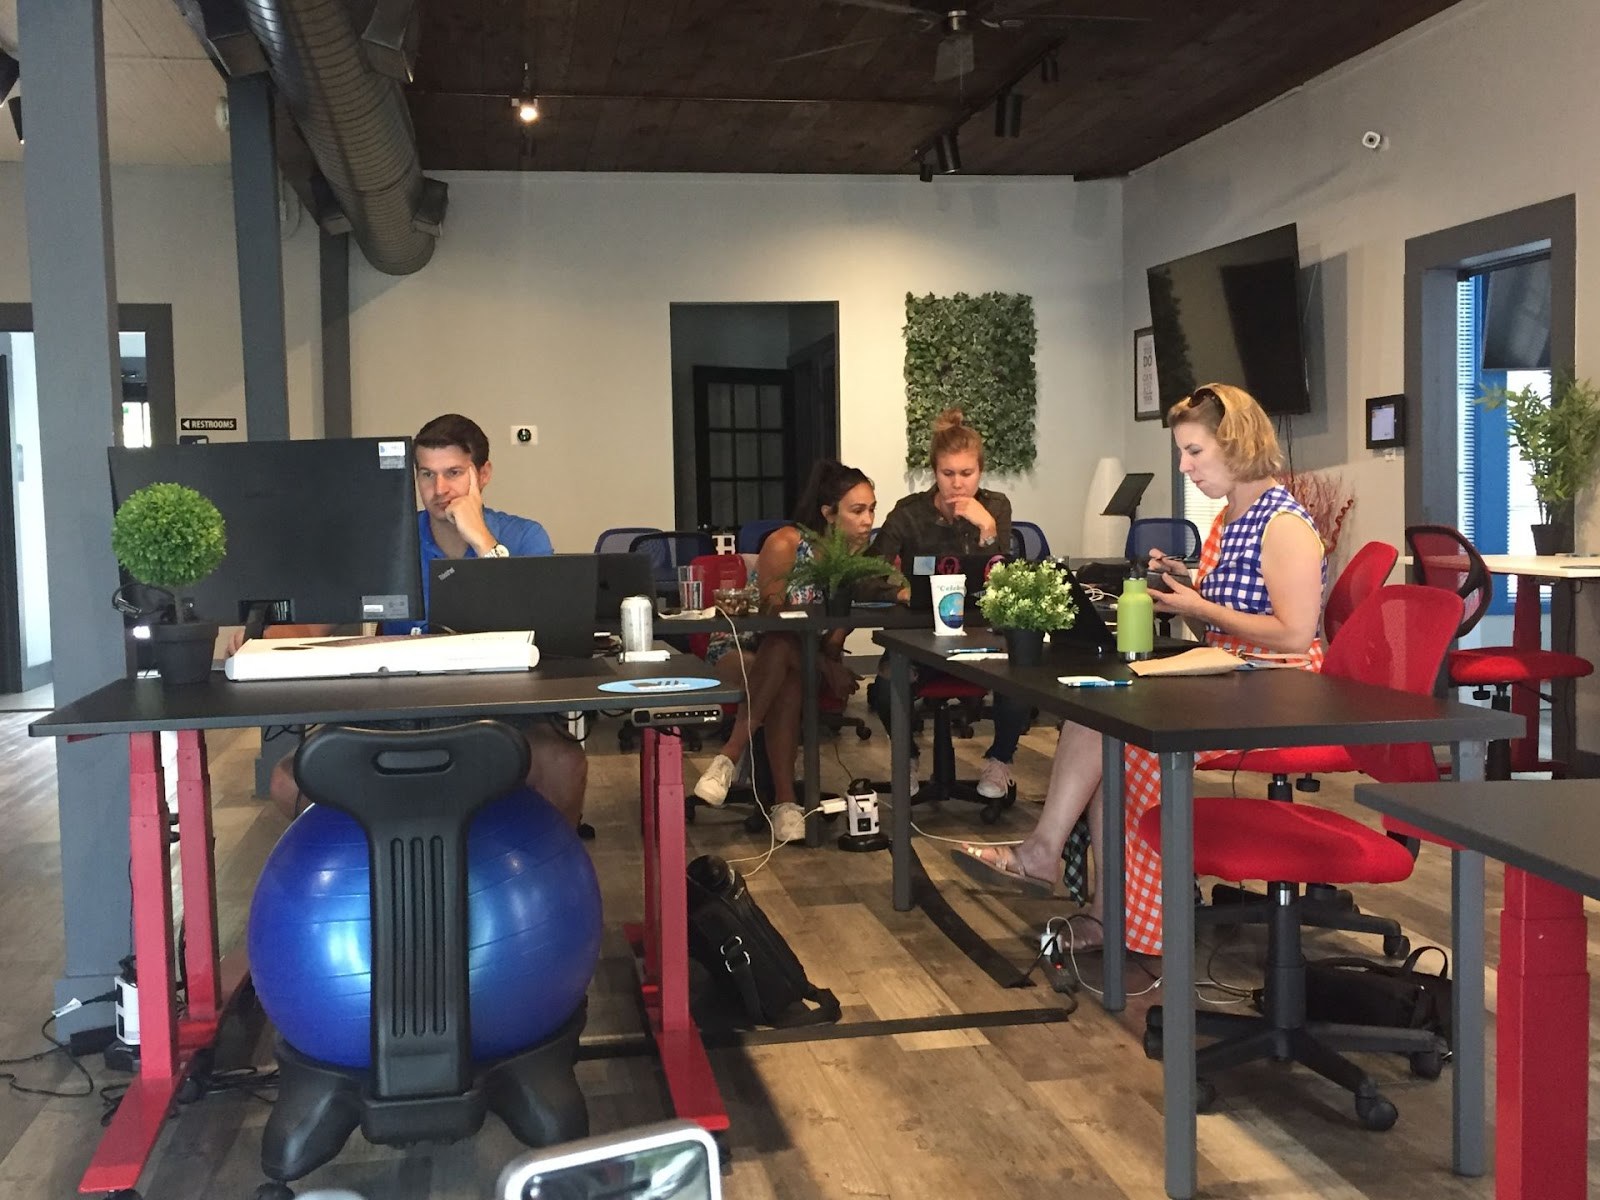 15 Best Coworking Spaces in Austin Texas [2020 List] 25